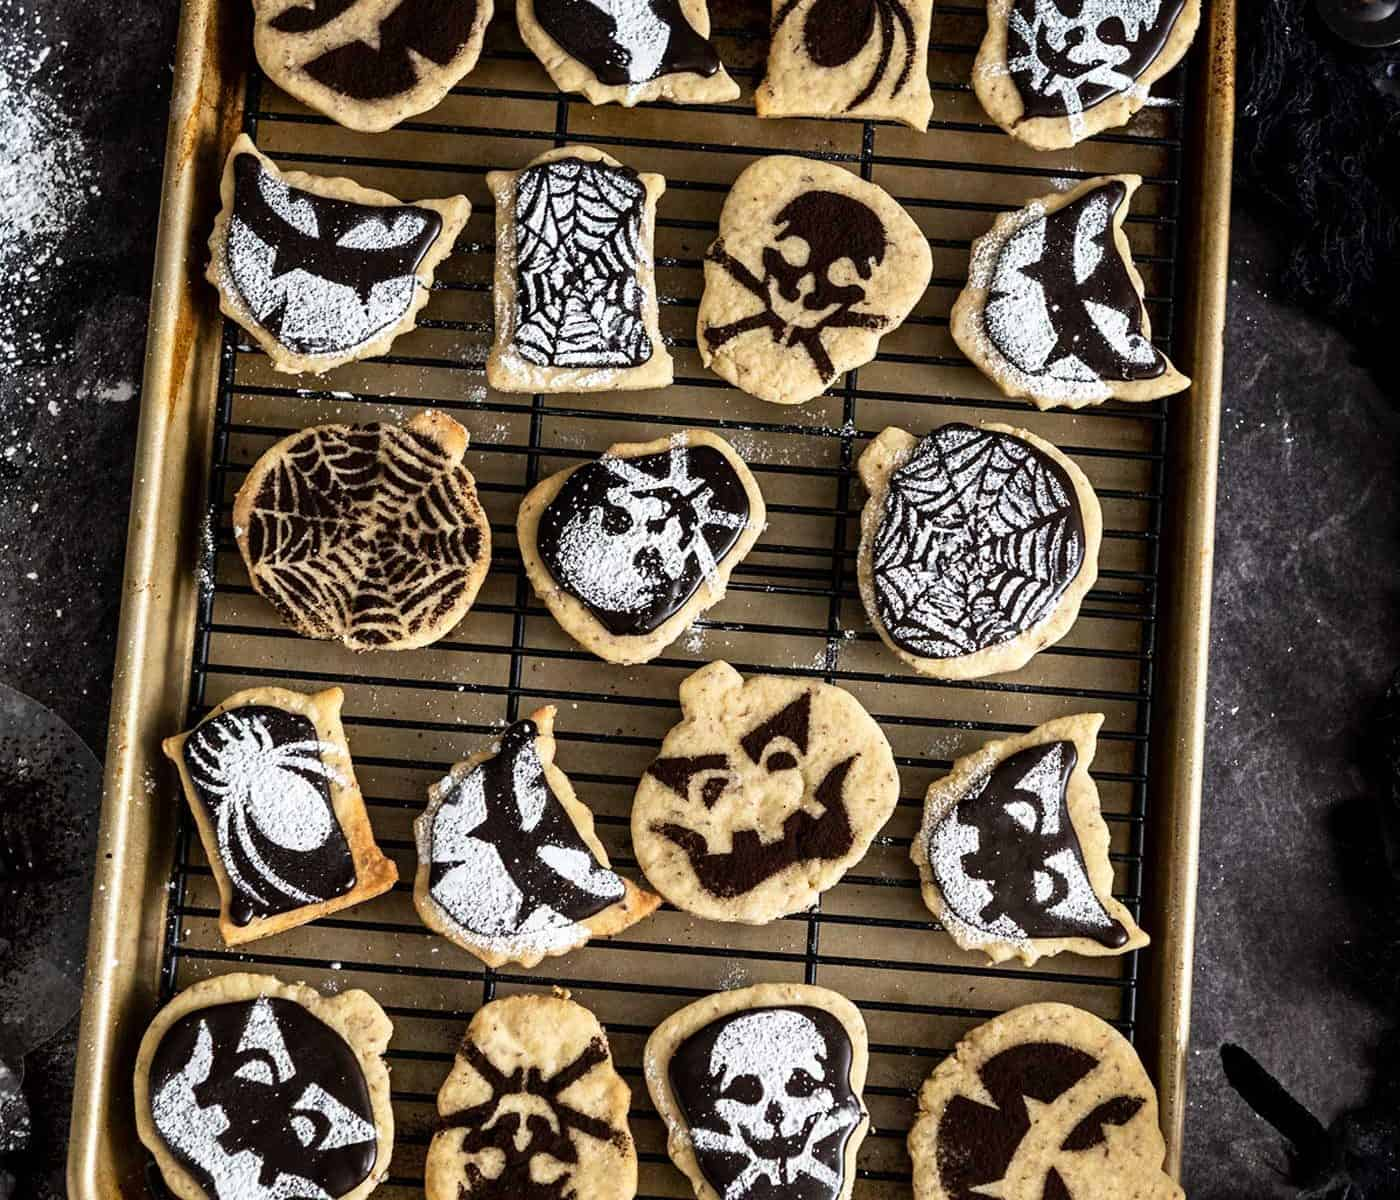 Baking sheet and cooling tray with halloween-stenciled shortbread cookies on it